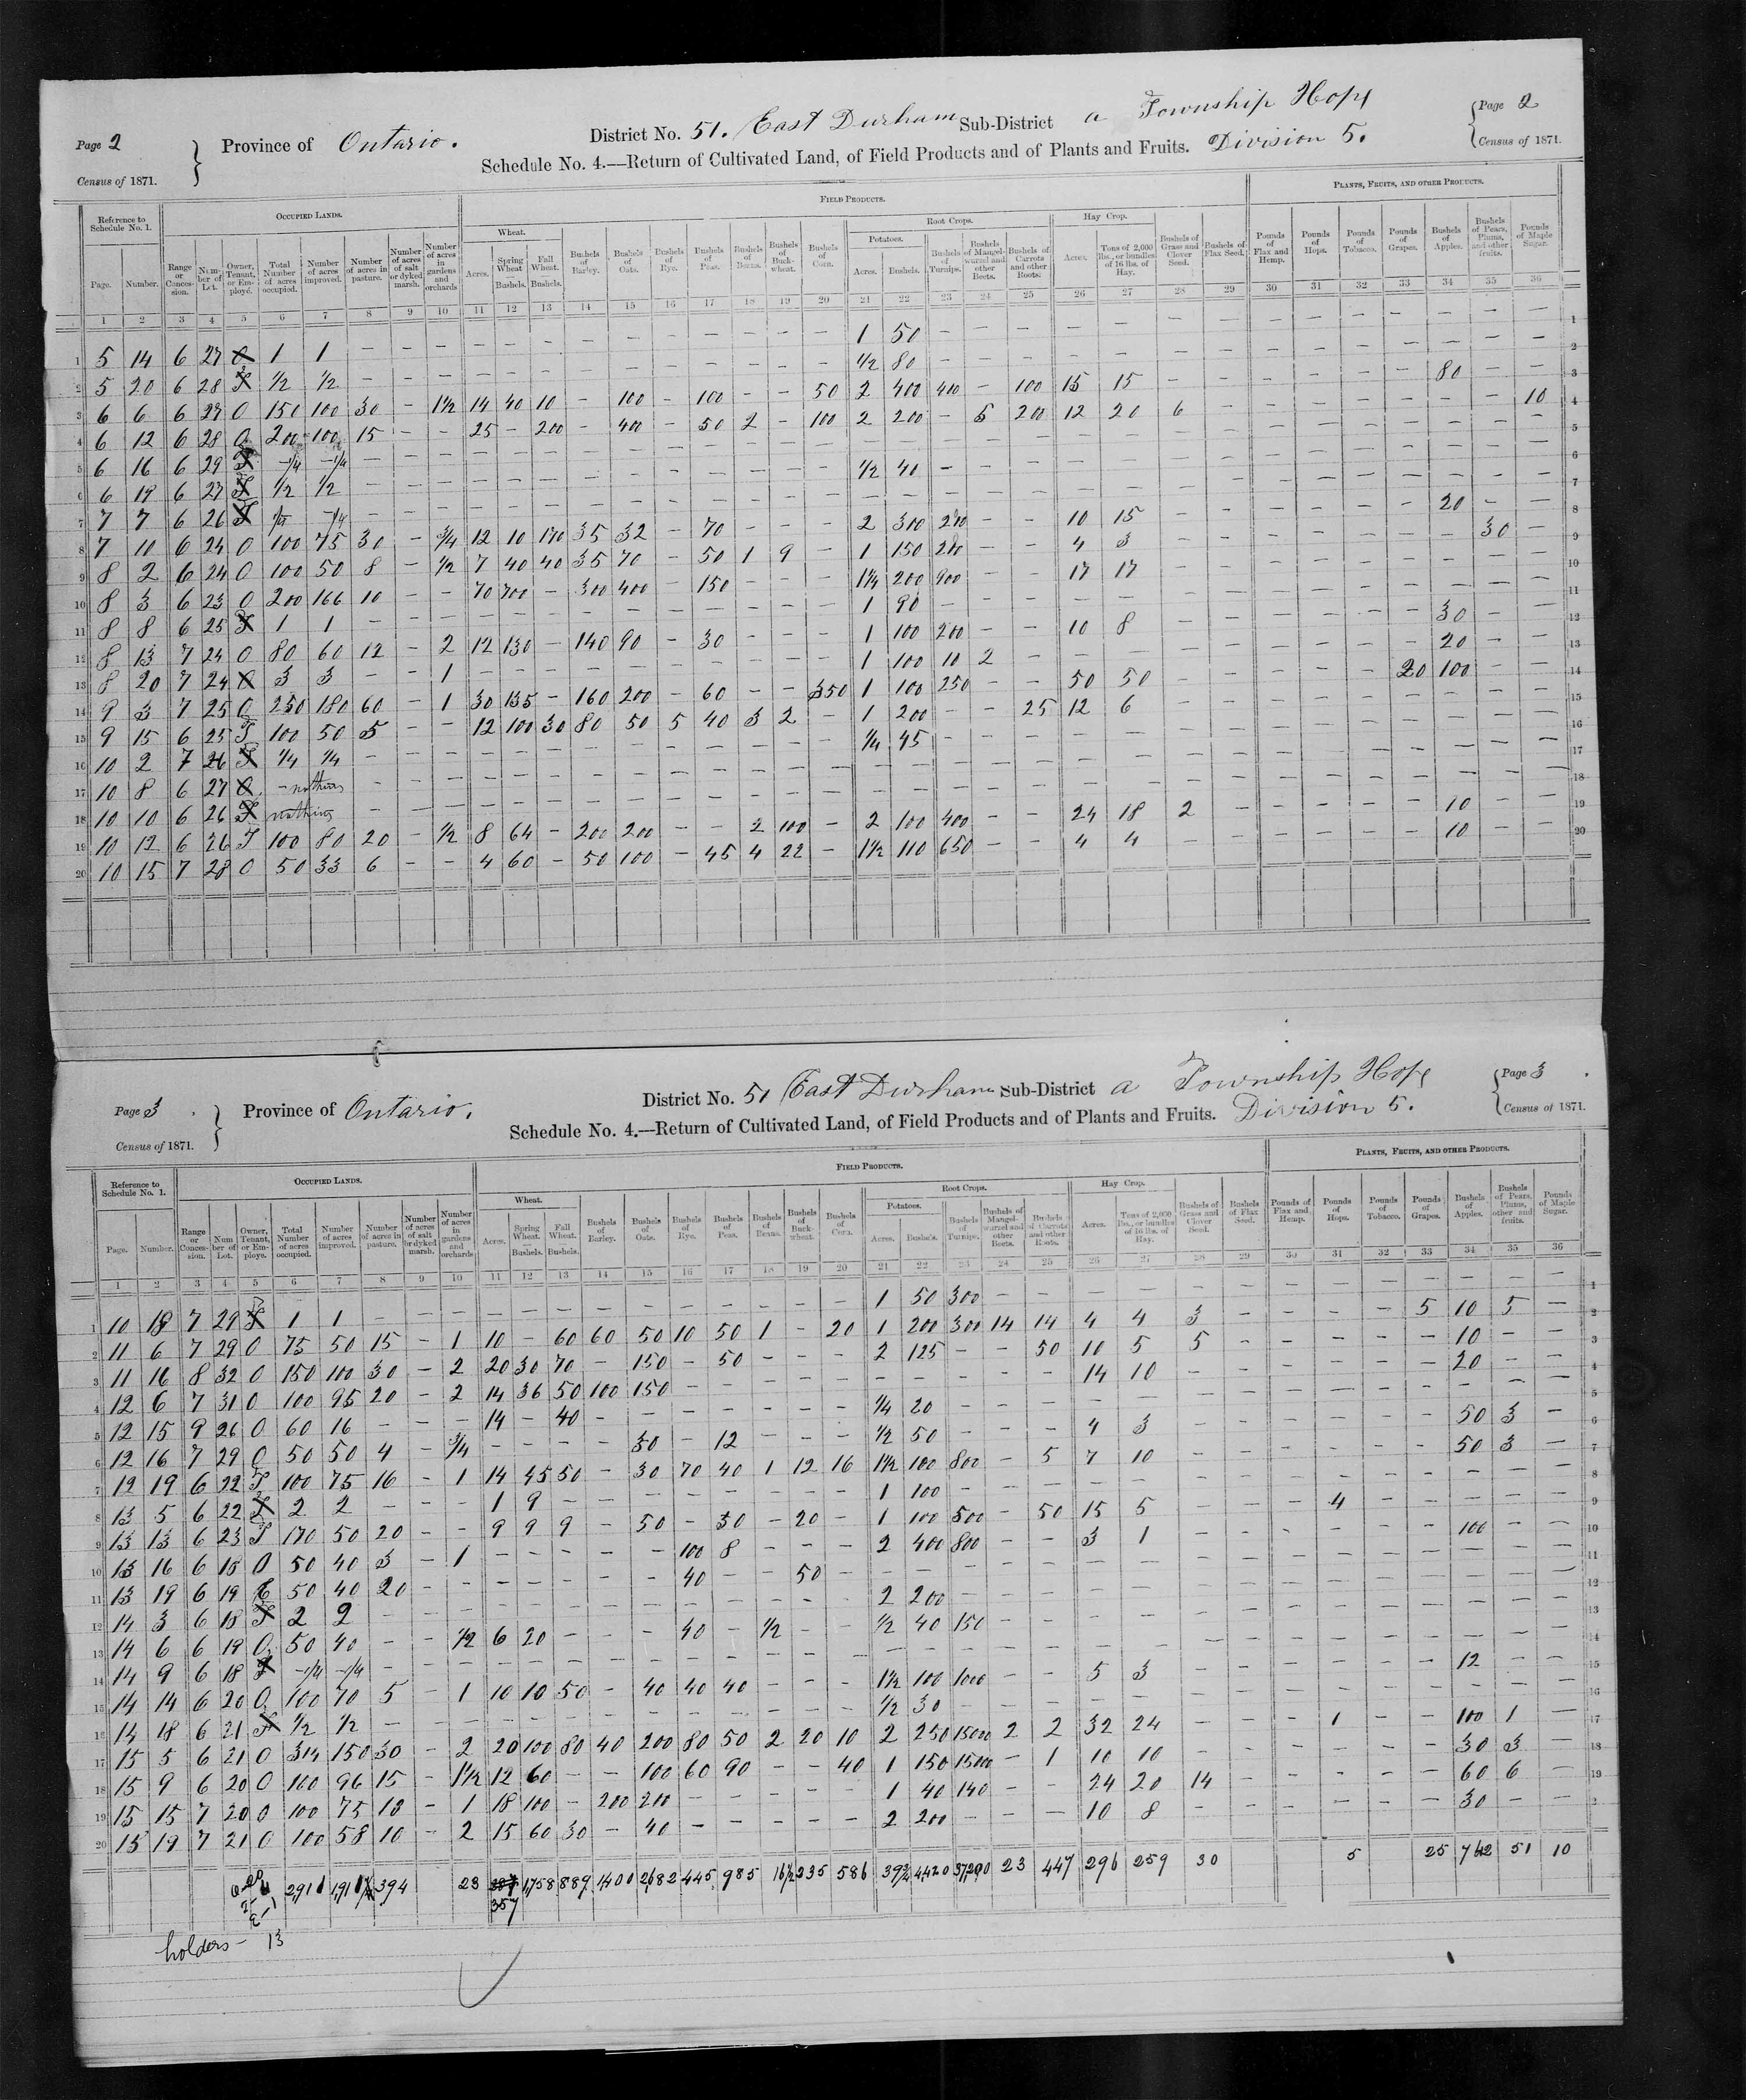 Title: Census of Canada, 1871 - Mikan Number: 142105 - Microform: c-9979